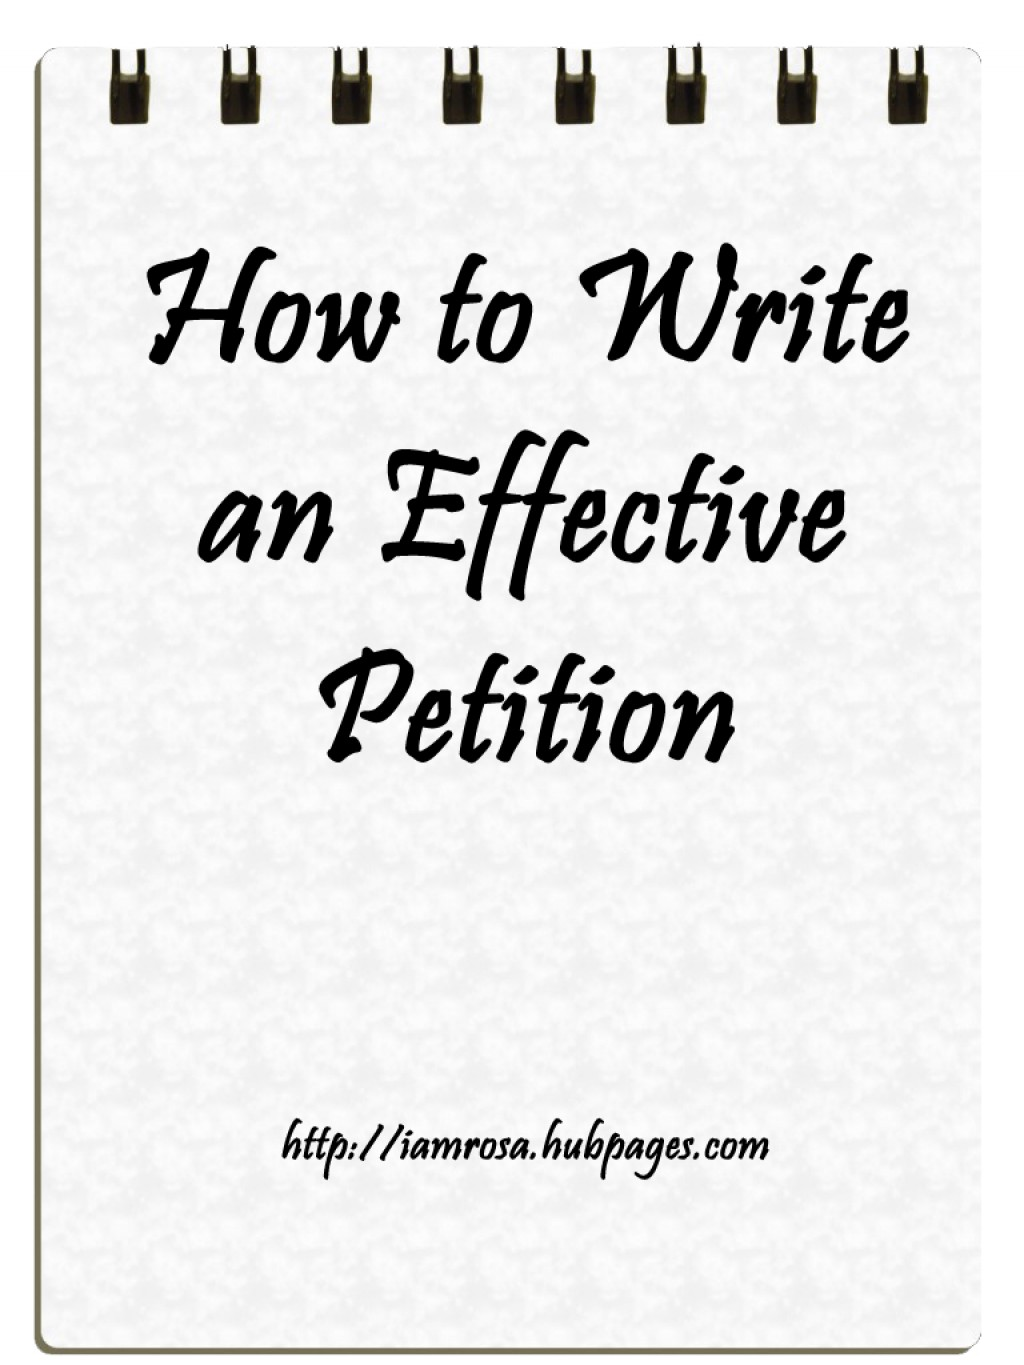 how to write petition